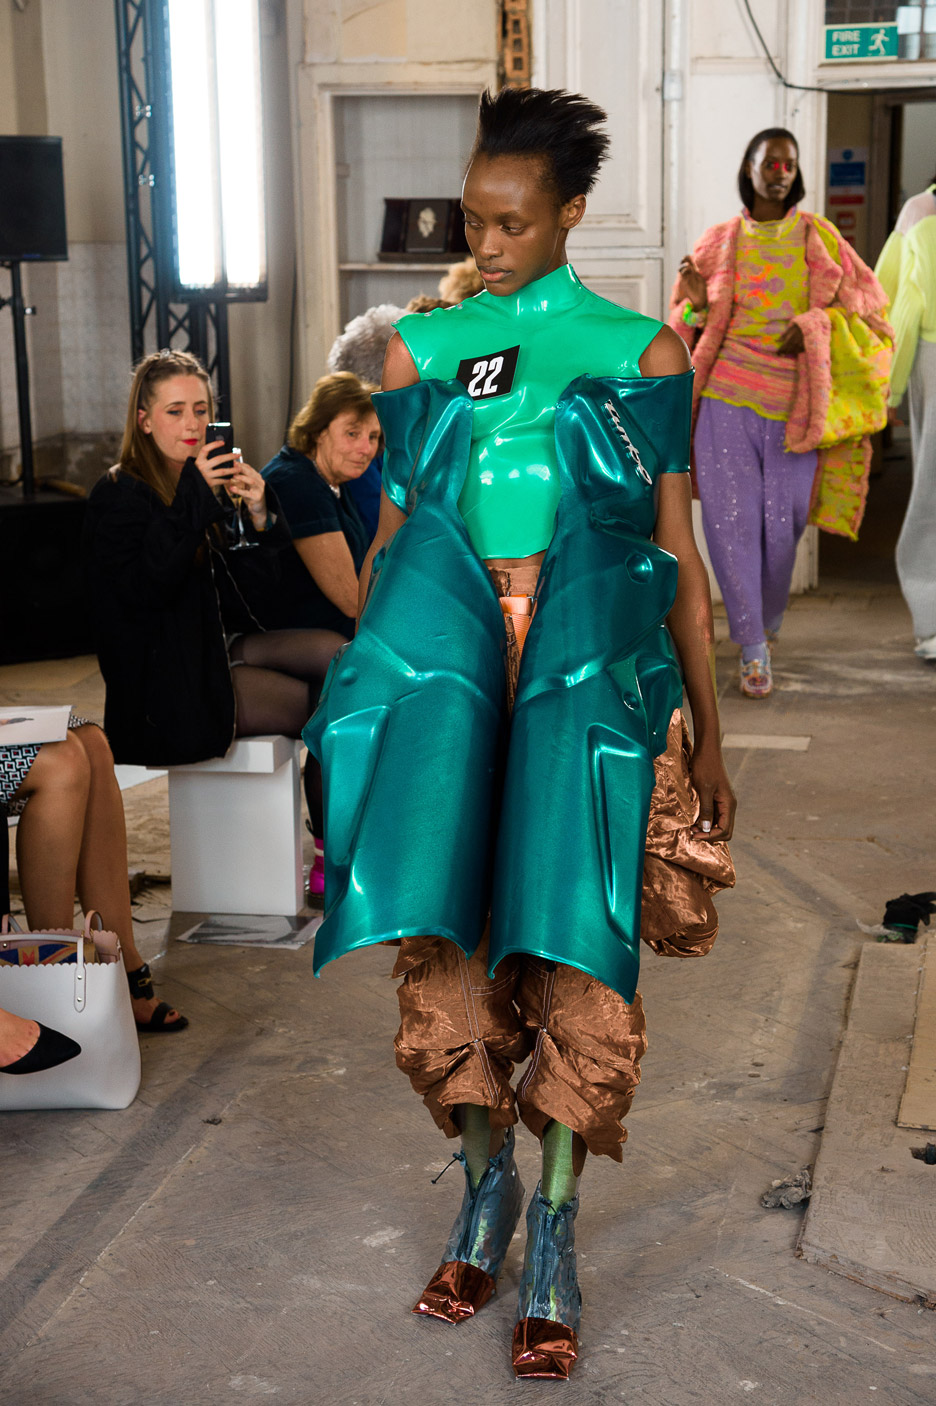 Timothy Bouyez-Forge's RCA graduate fashion collection